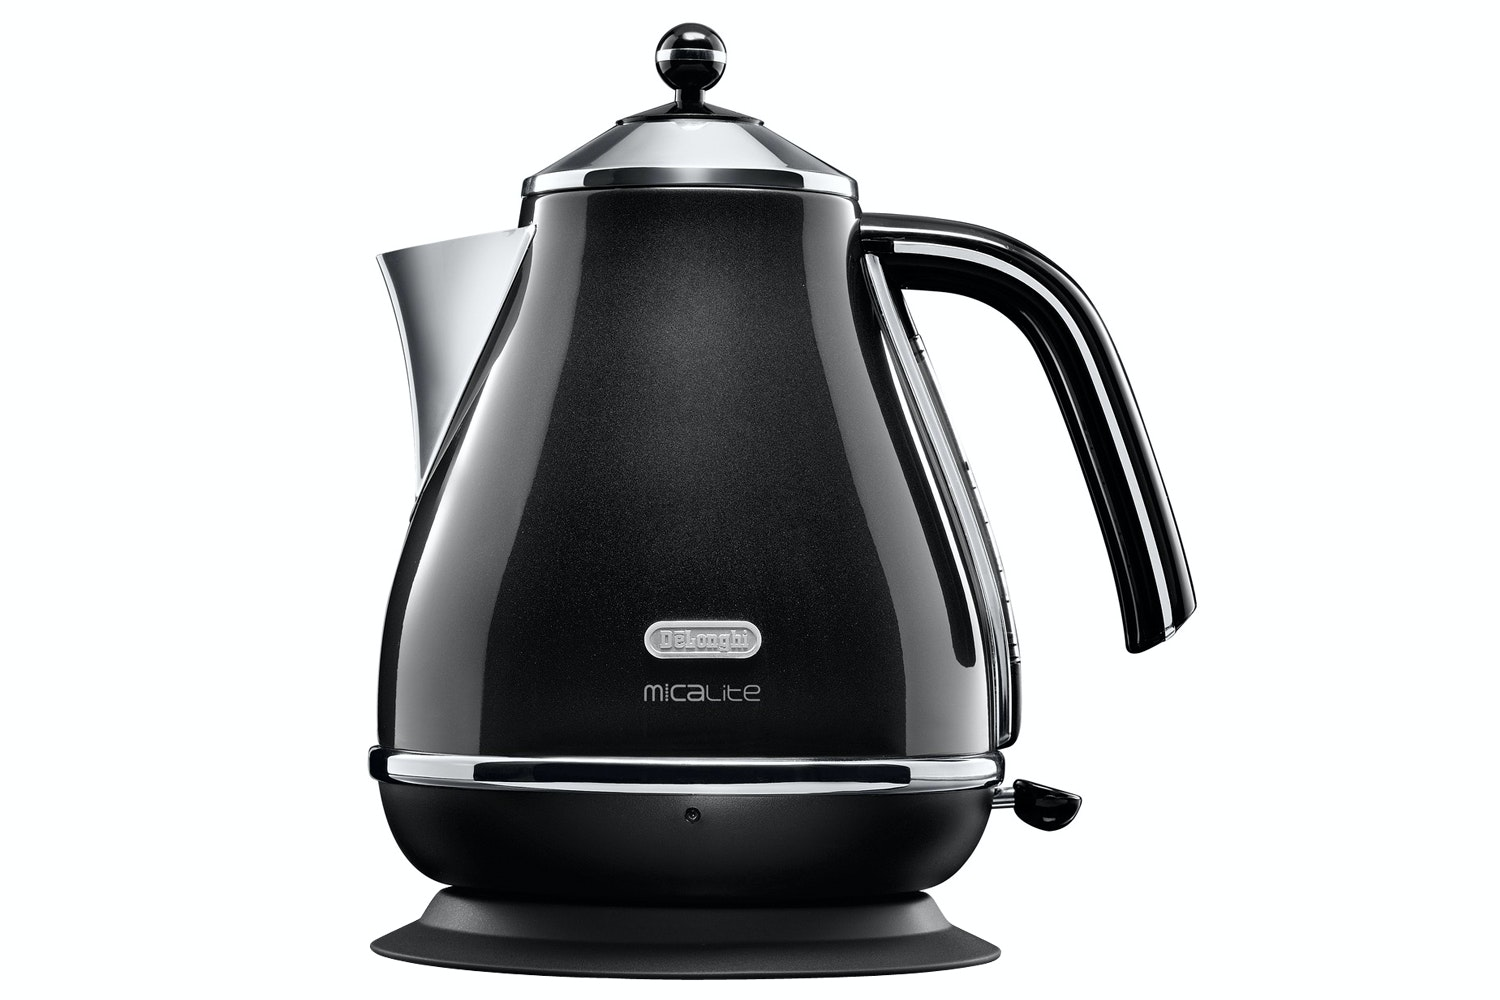 DeLonghi Micalite 1.7L Kettle | Black